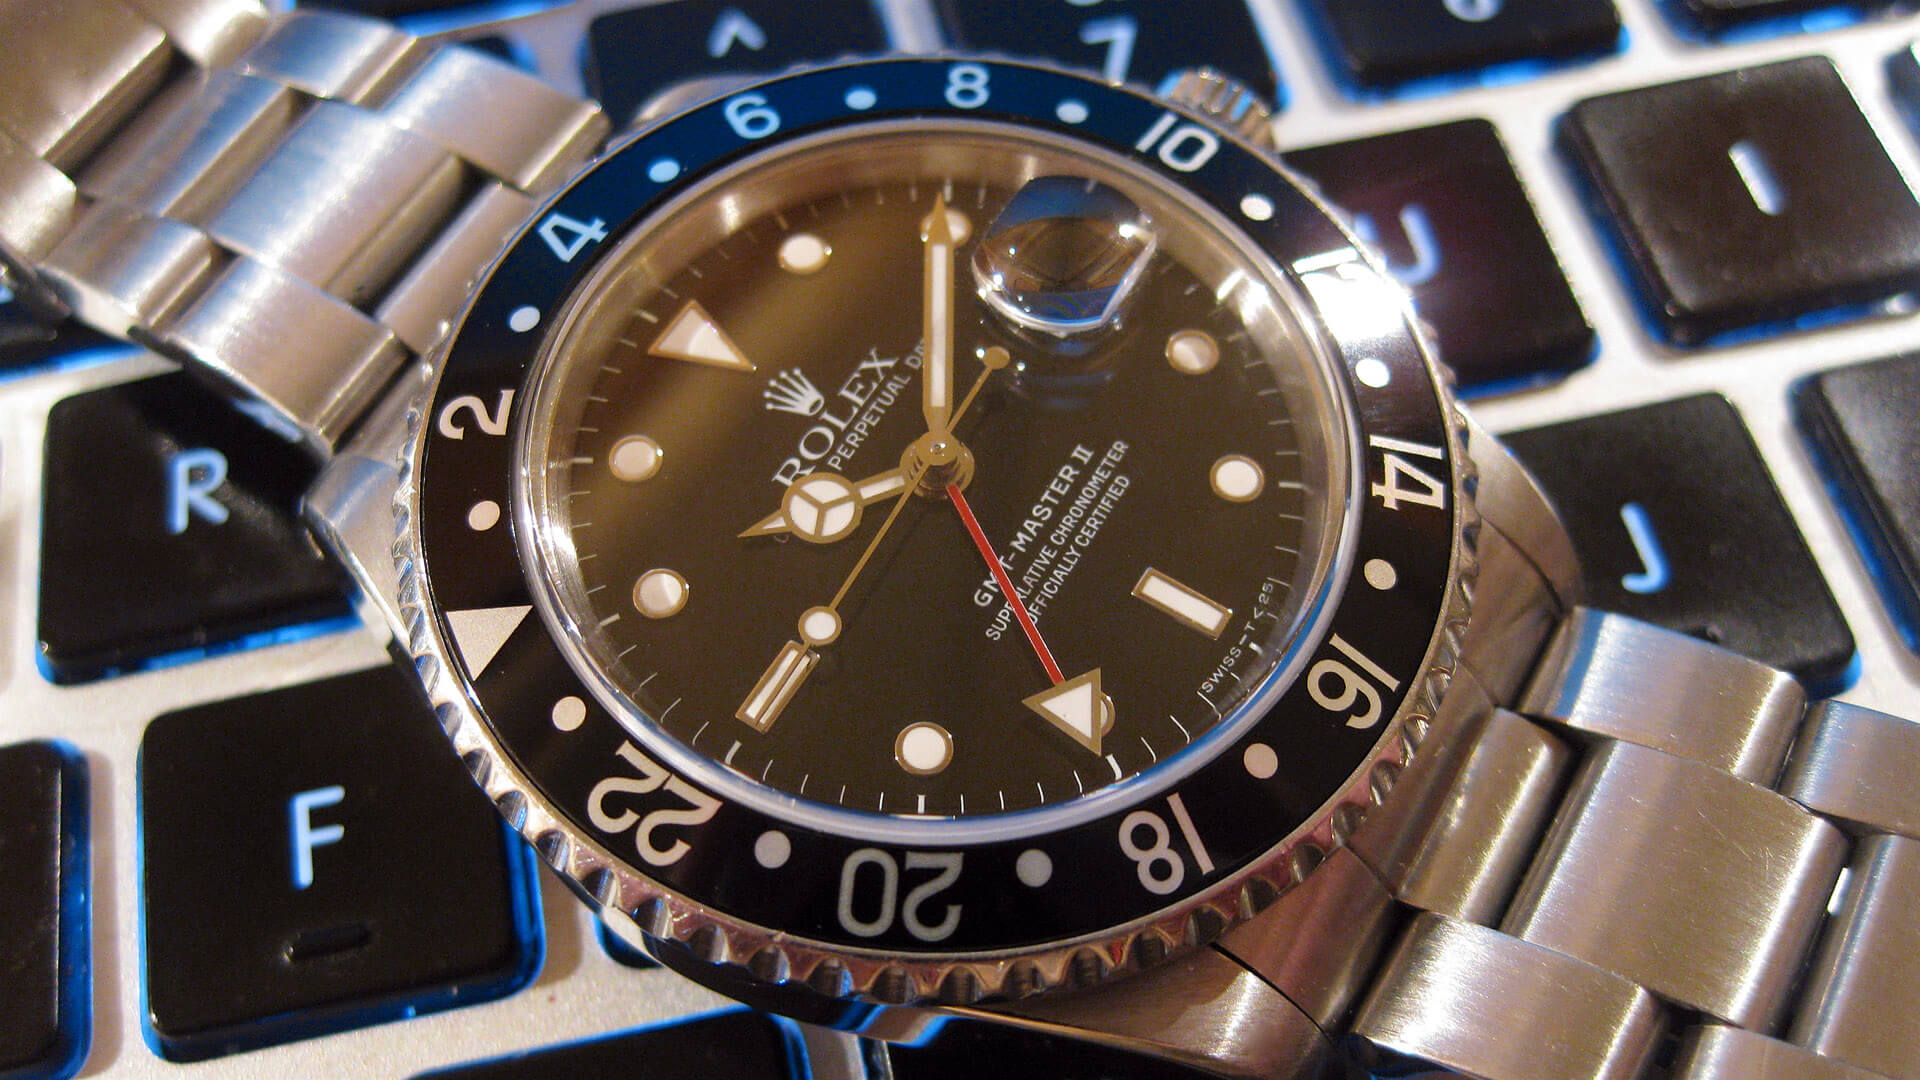 Image of Rolex GMT II - circa 1989 with black bezel